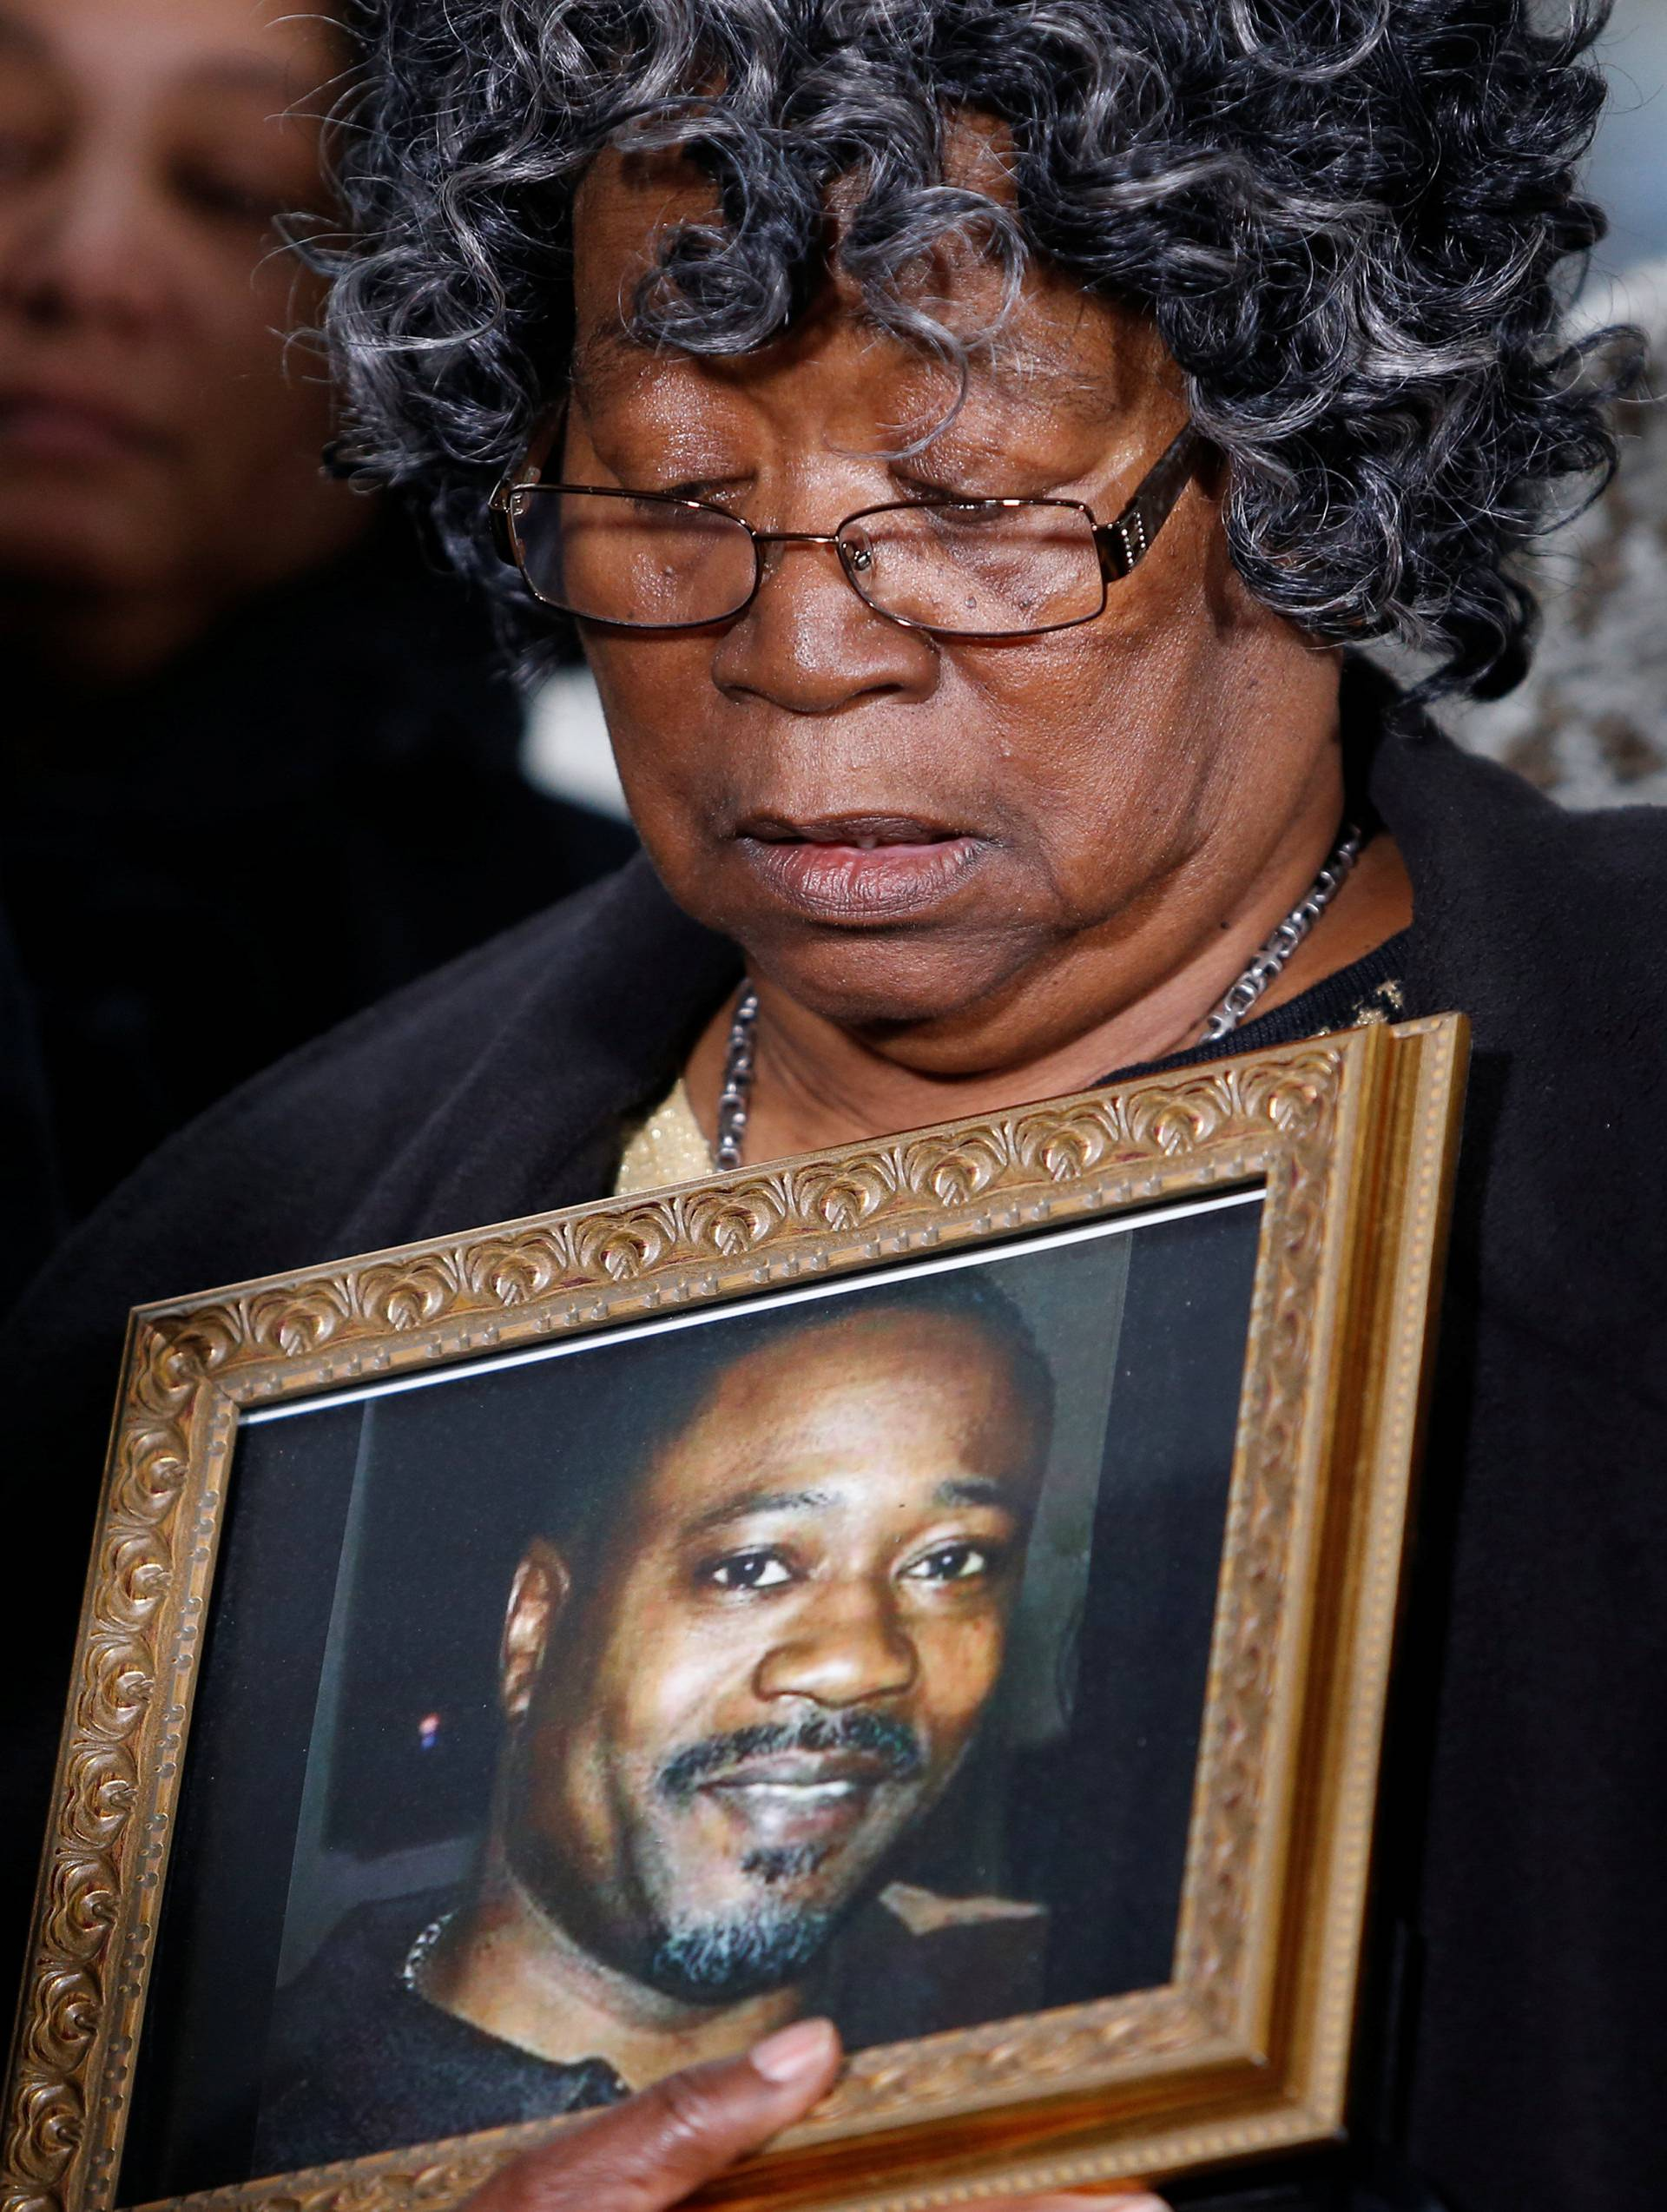 Judy Scott looks over a photo of her son Walter Scott during a news conference after former police officer Michael Slager was sentenced to 20 years in prison, in Charleston